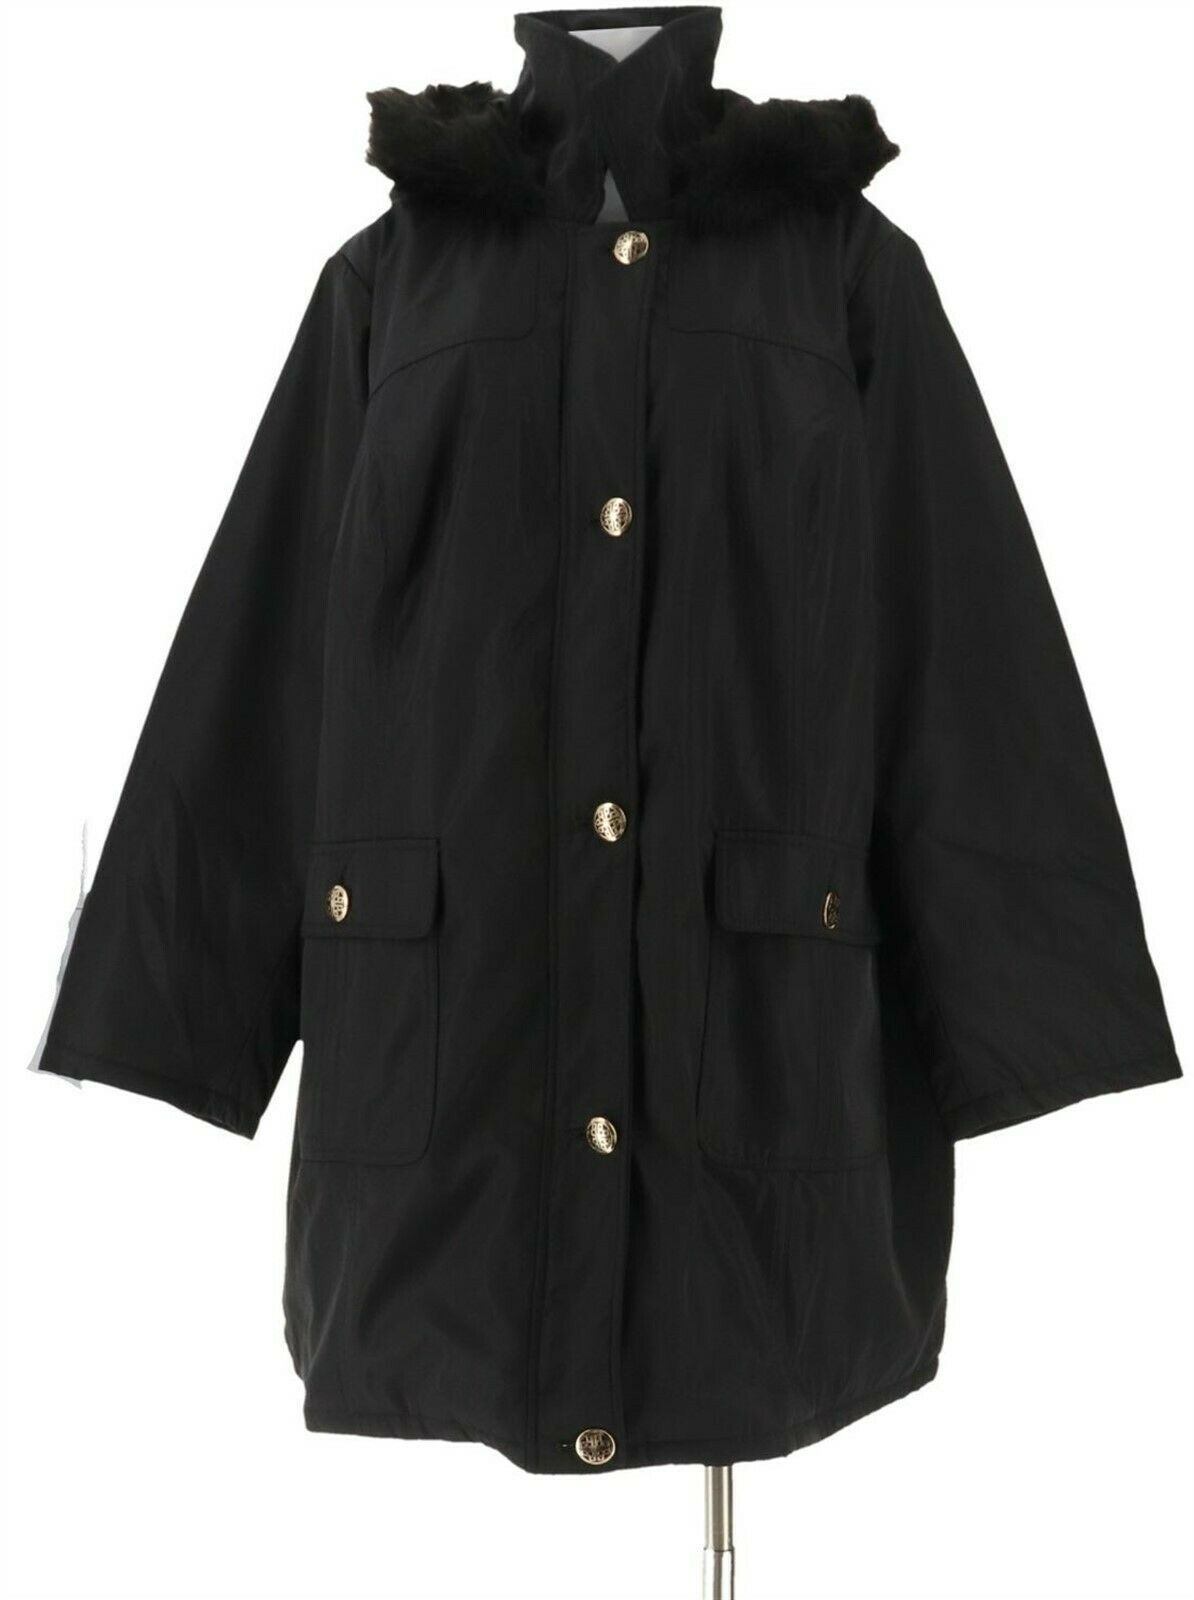 Primary image for Dennis Basso Water Resistant Coat Quilted Lining Black XL NEW A298302